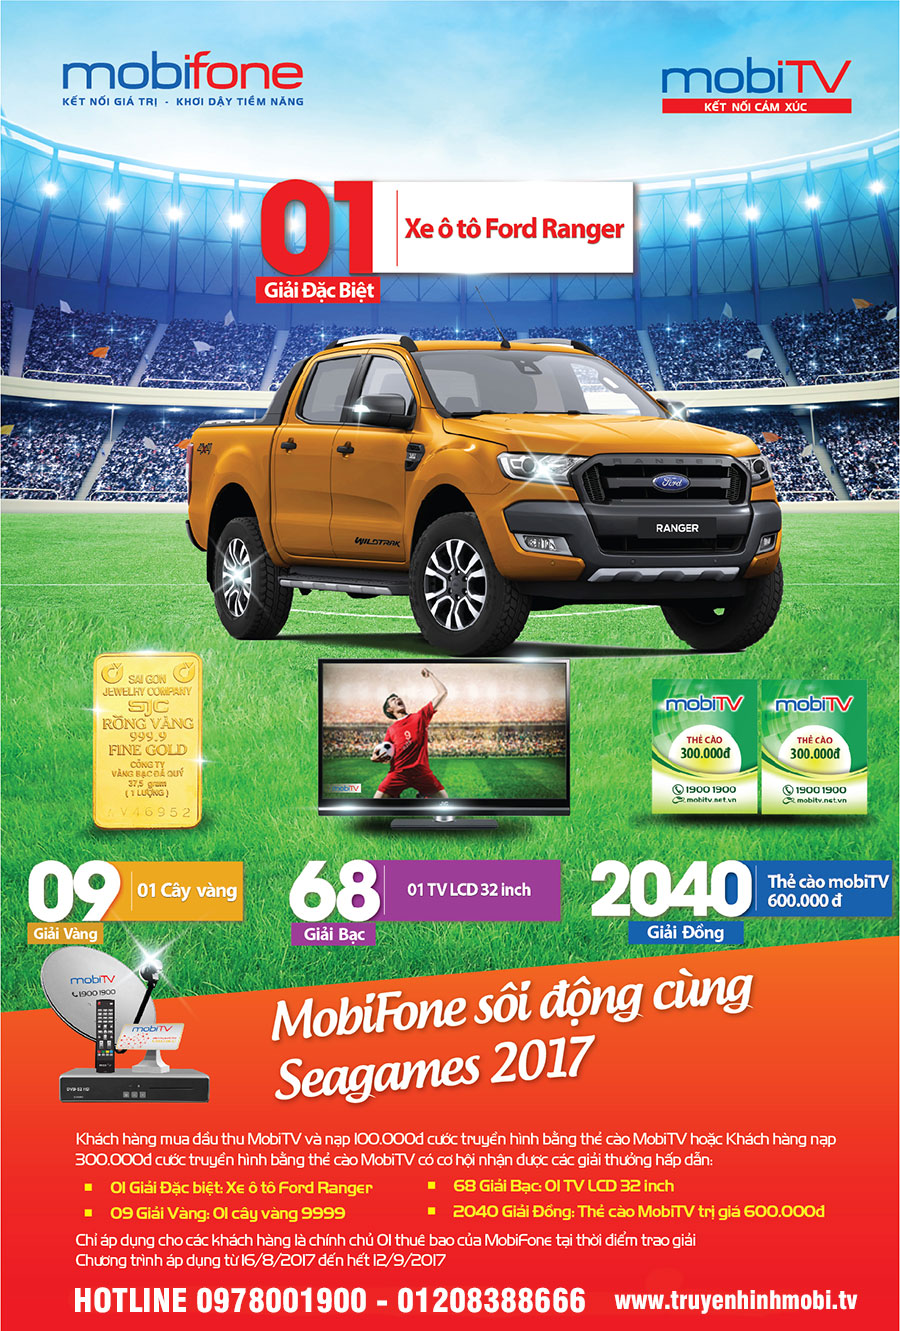 lap-truyen-hinh-mobitv-trung-oto-ford-ranger